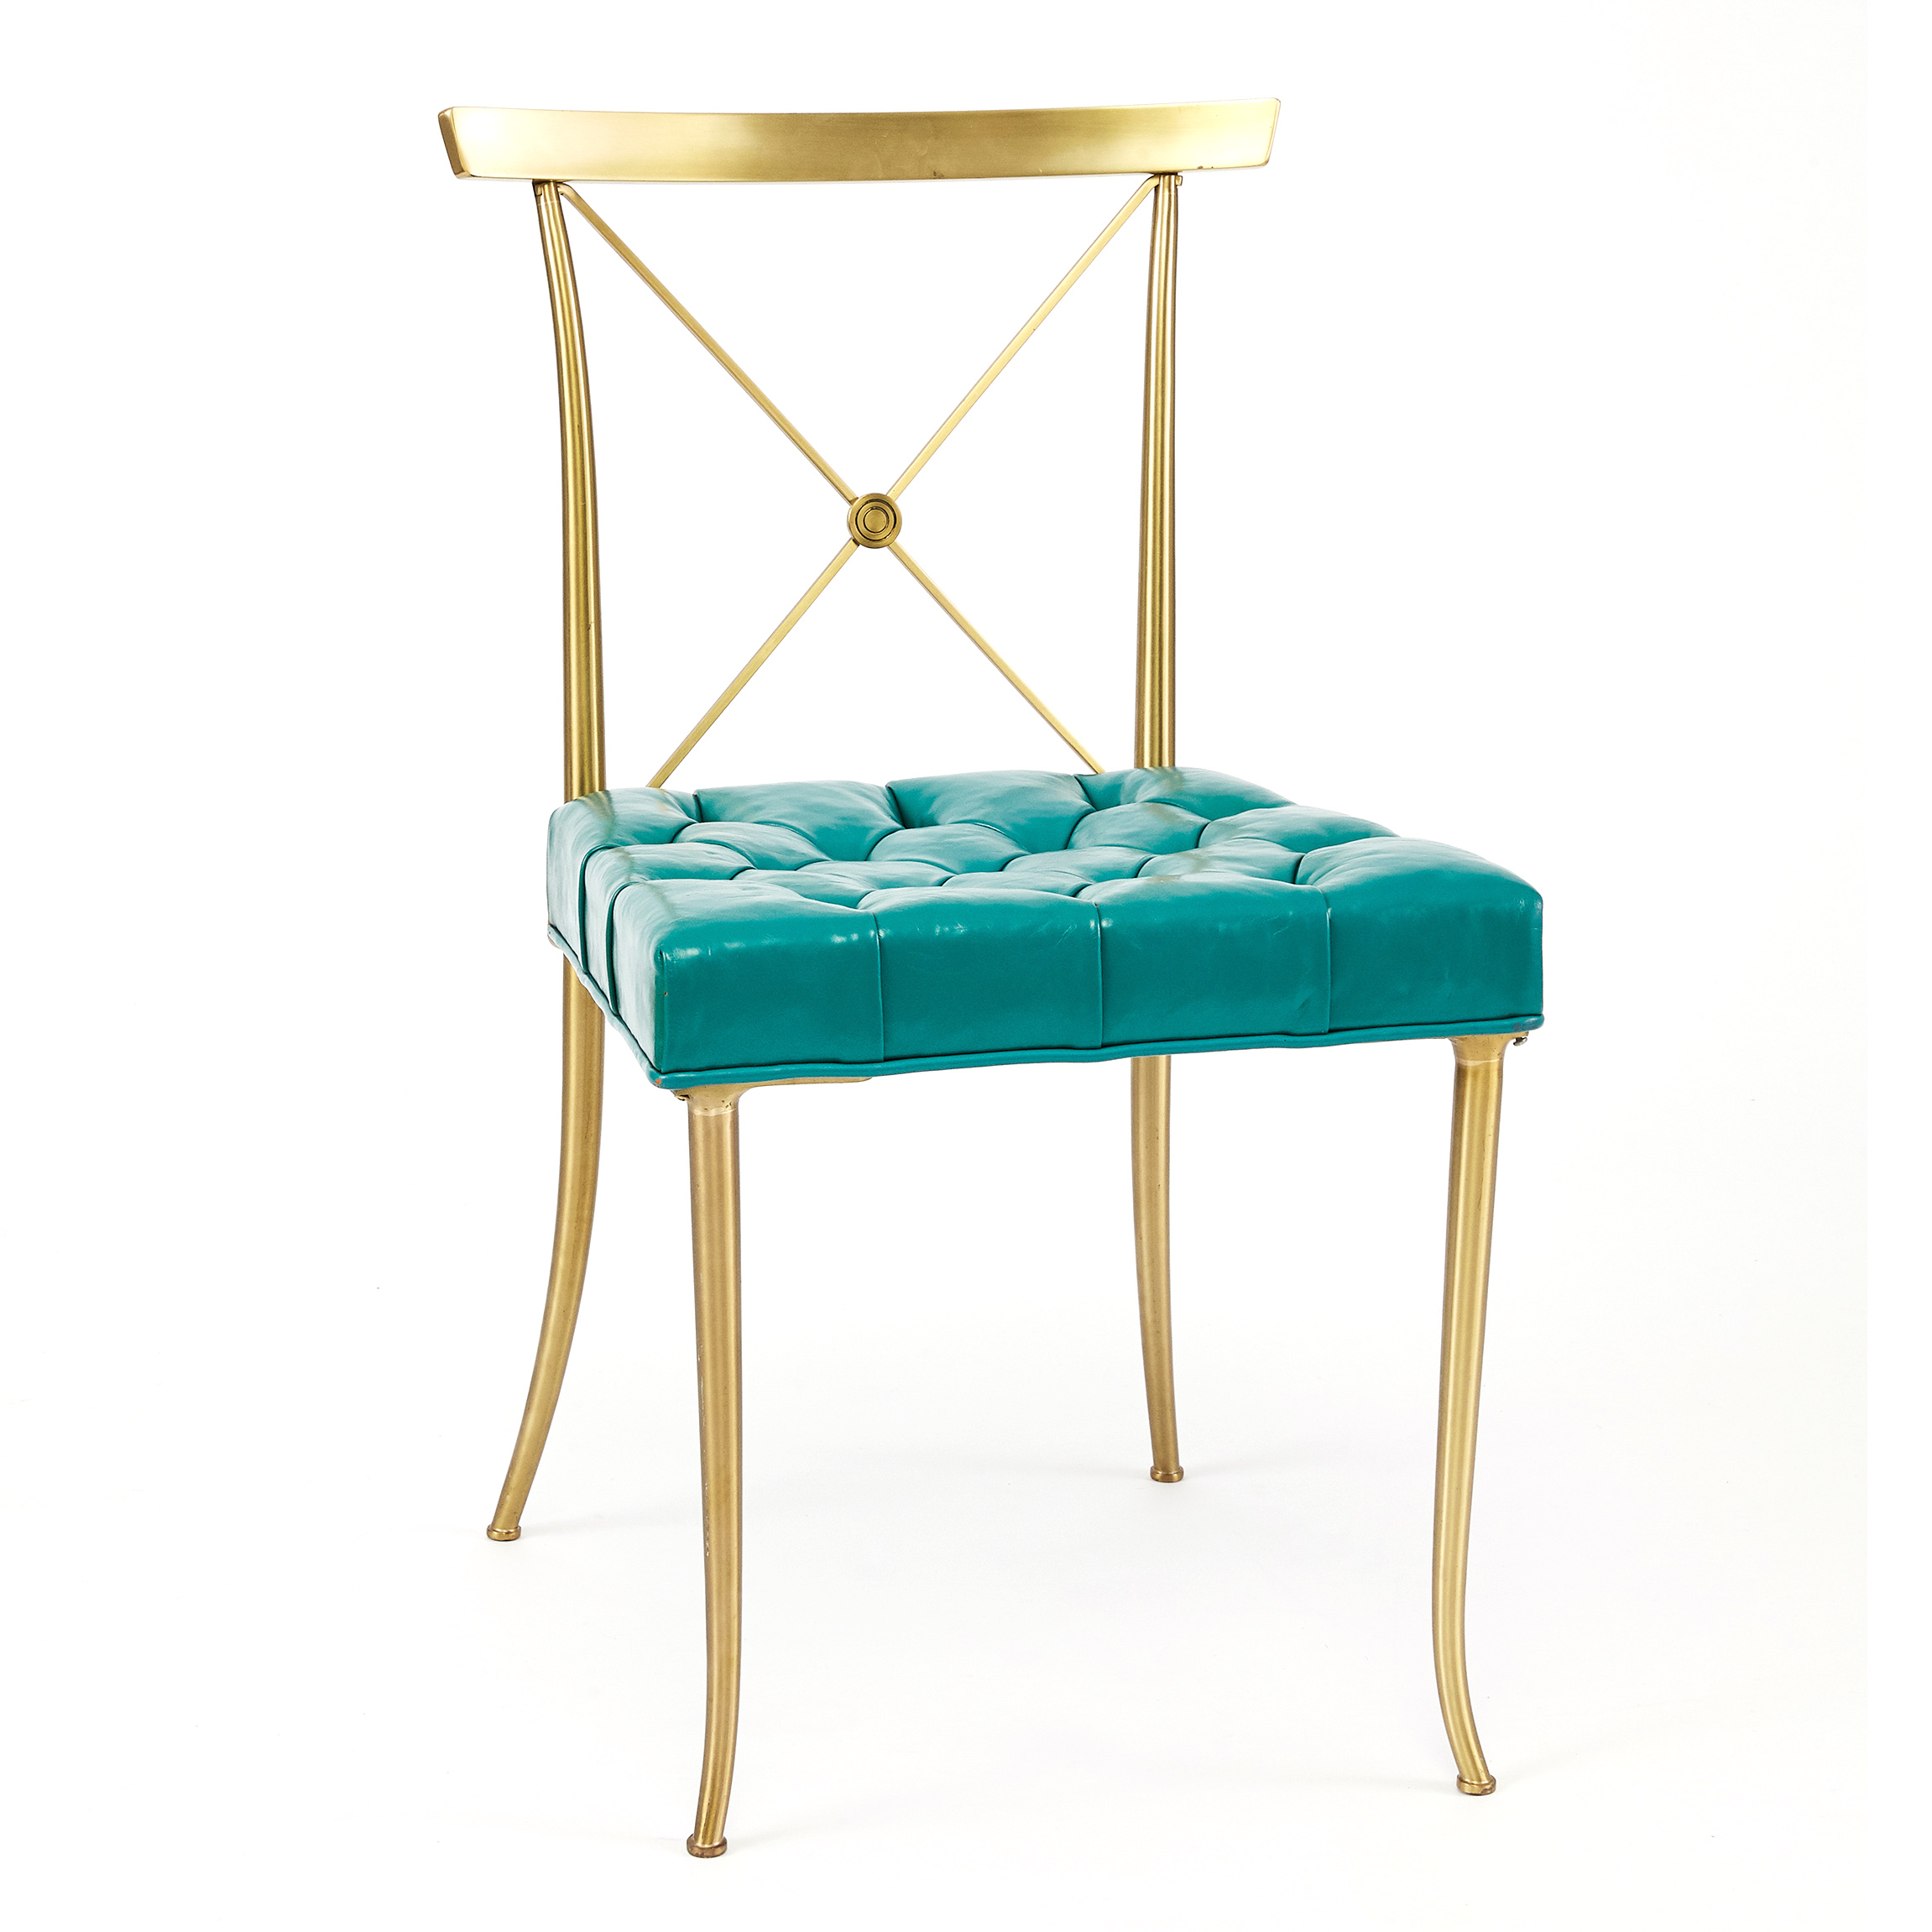 Genial Pair Of Brass Billy Haines Chairs With Turquoise Tufted Leather